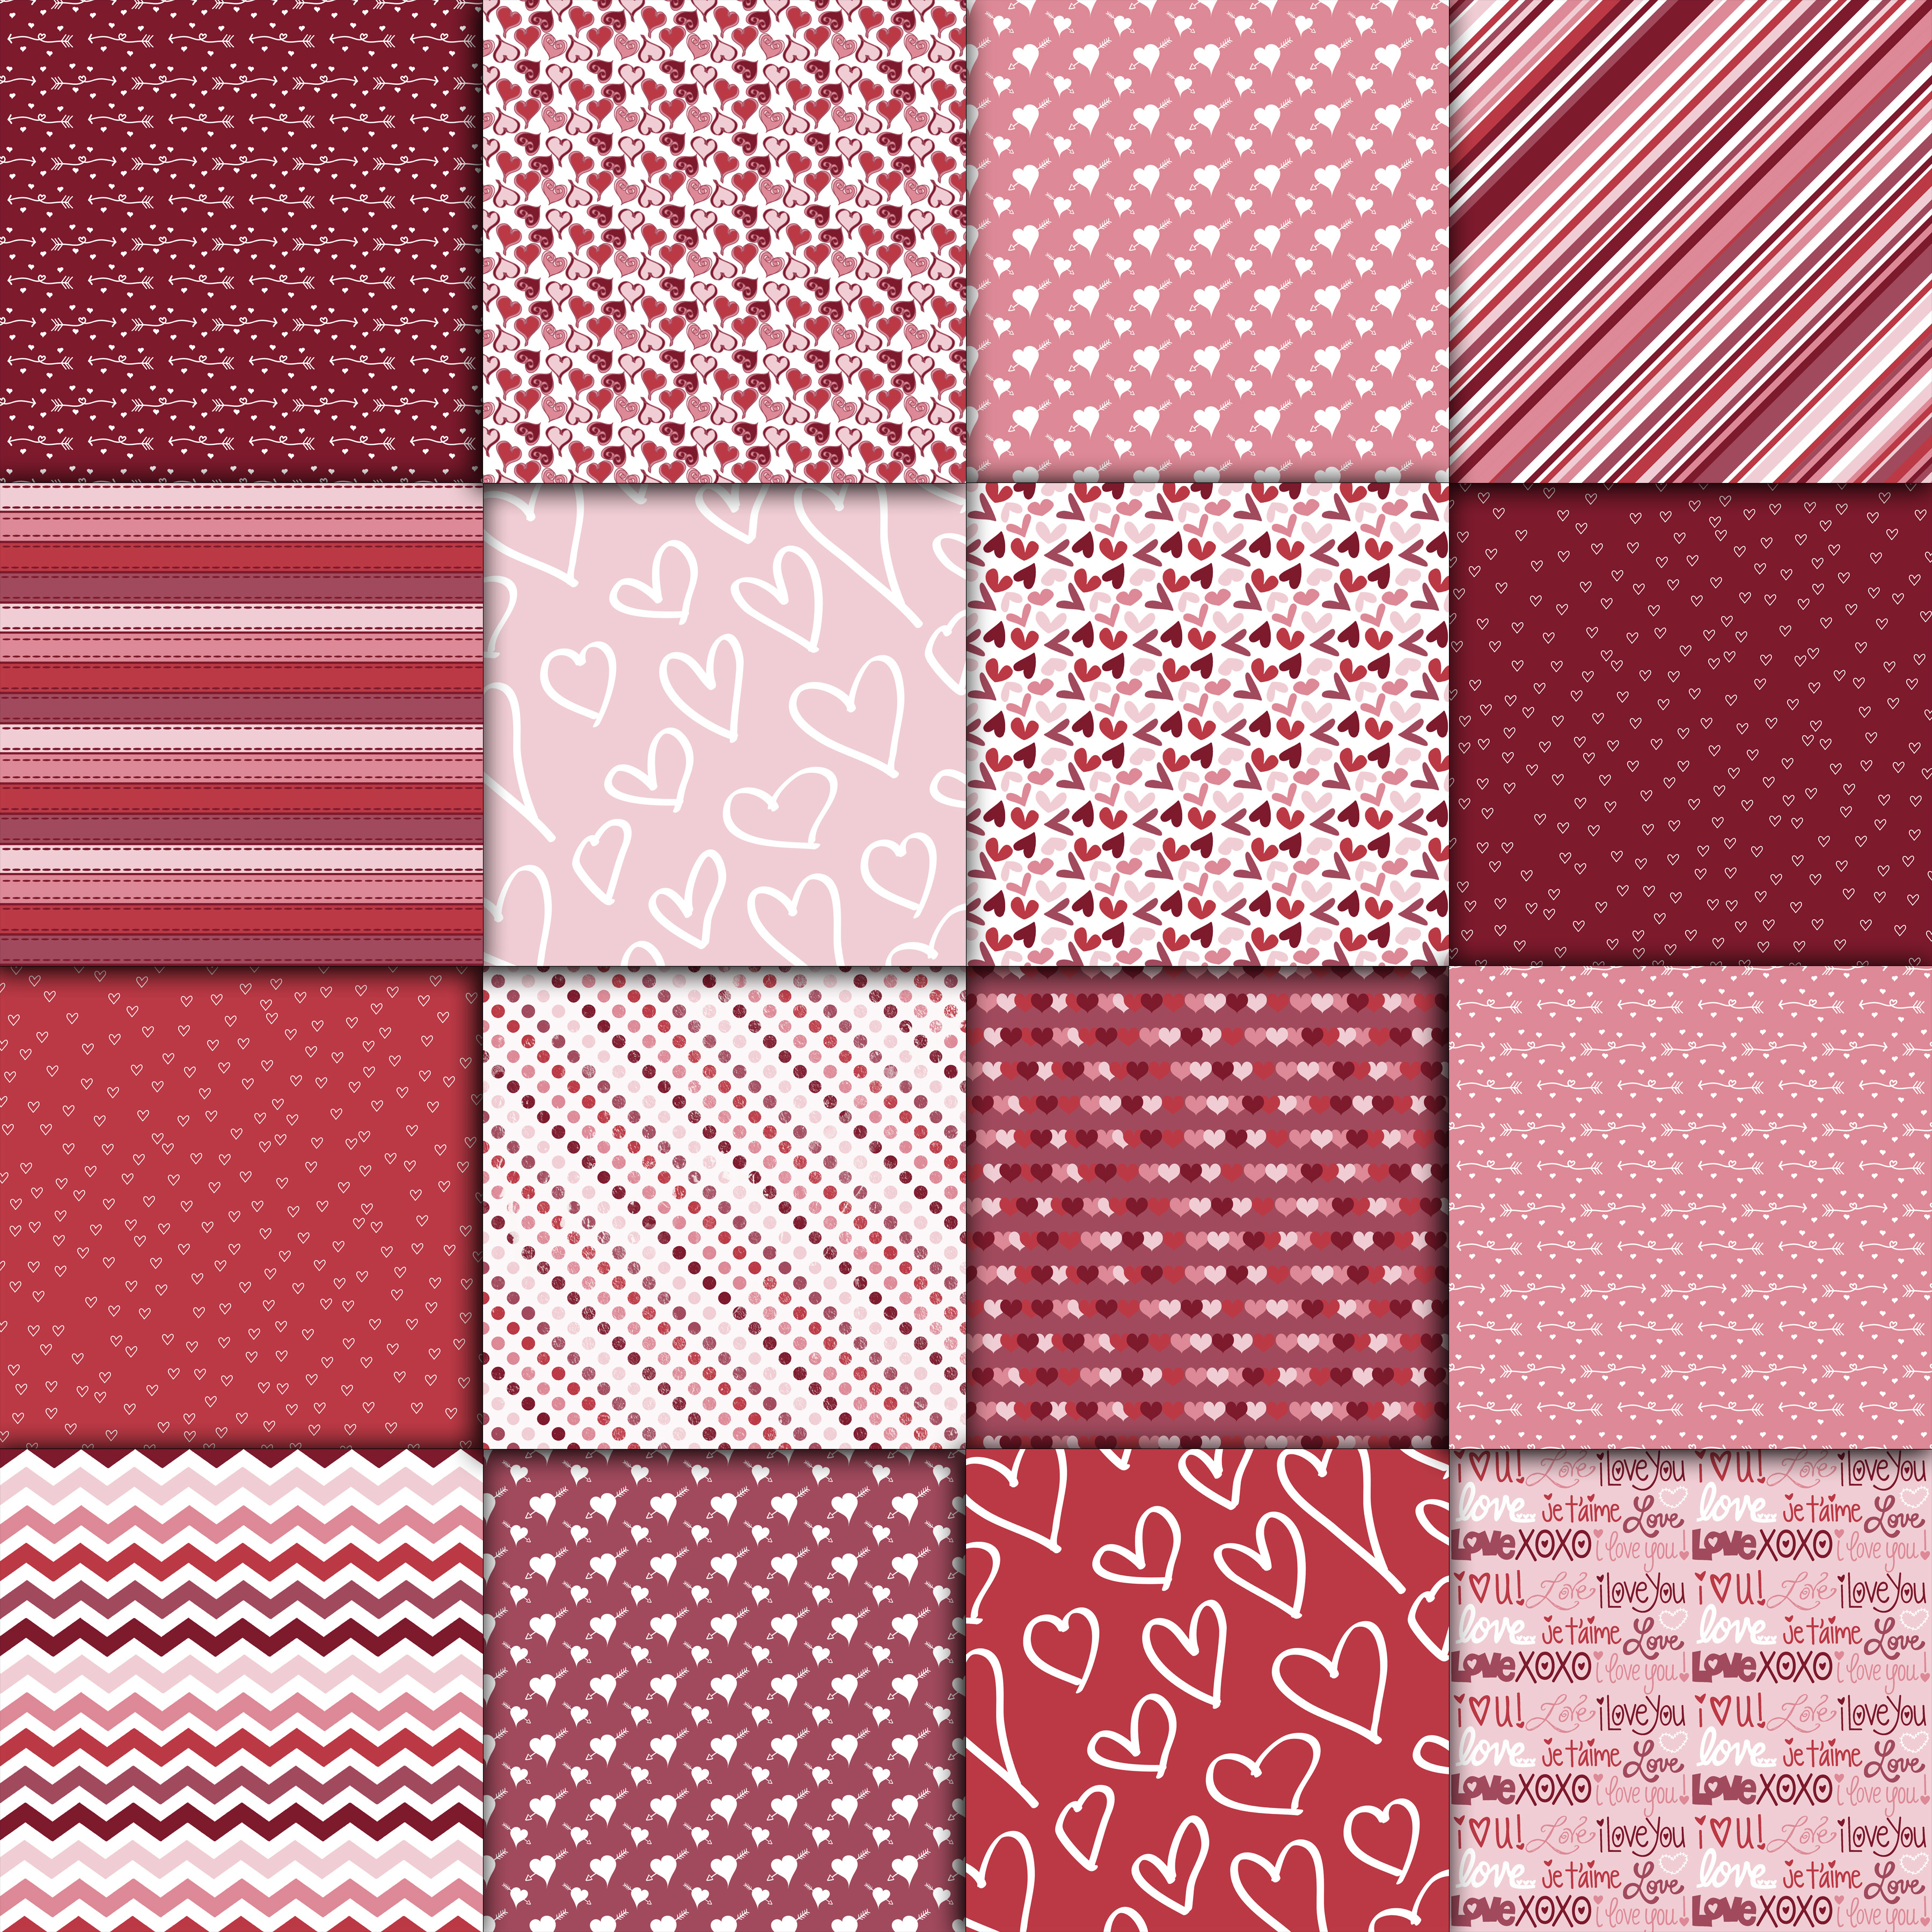 Sweet Valentine Digital Paper Graphic By oldmarketdesigns Image 2